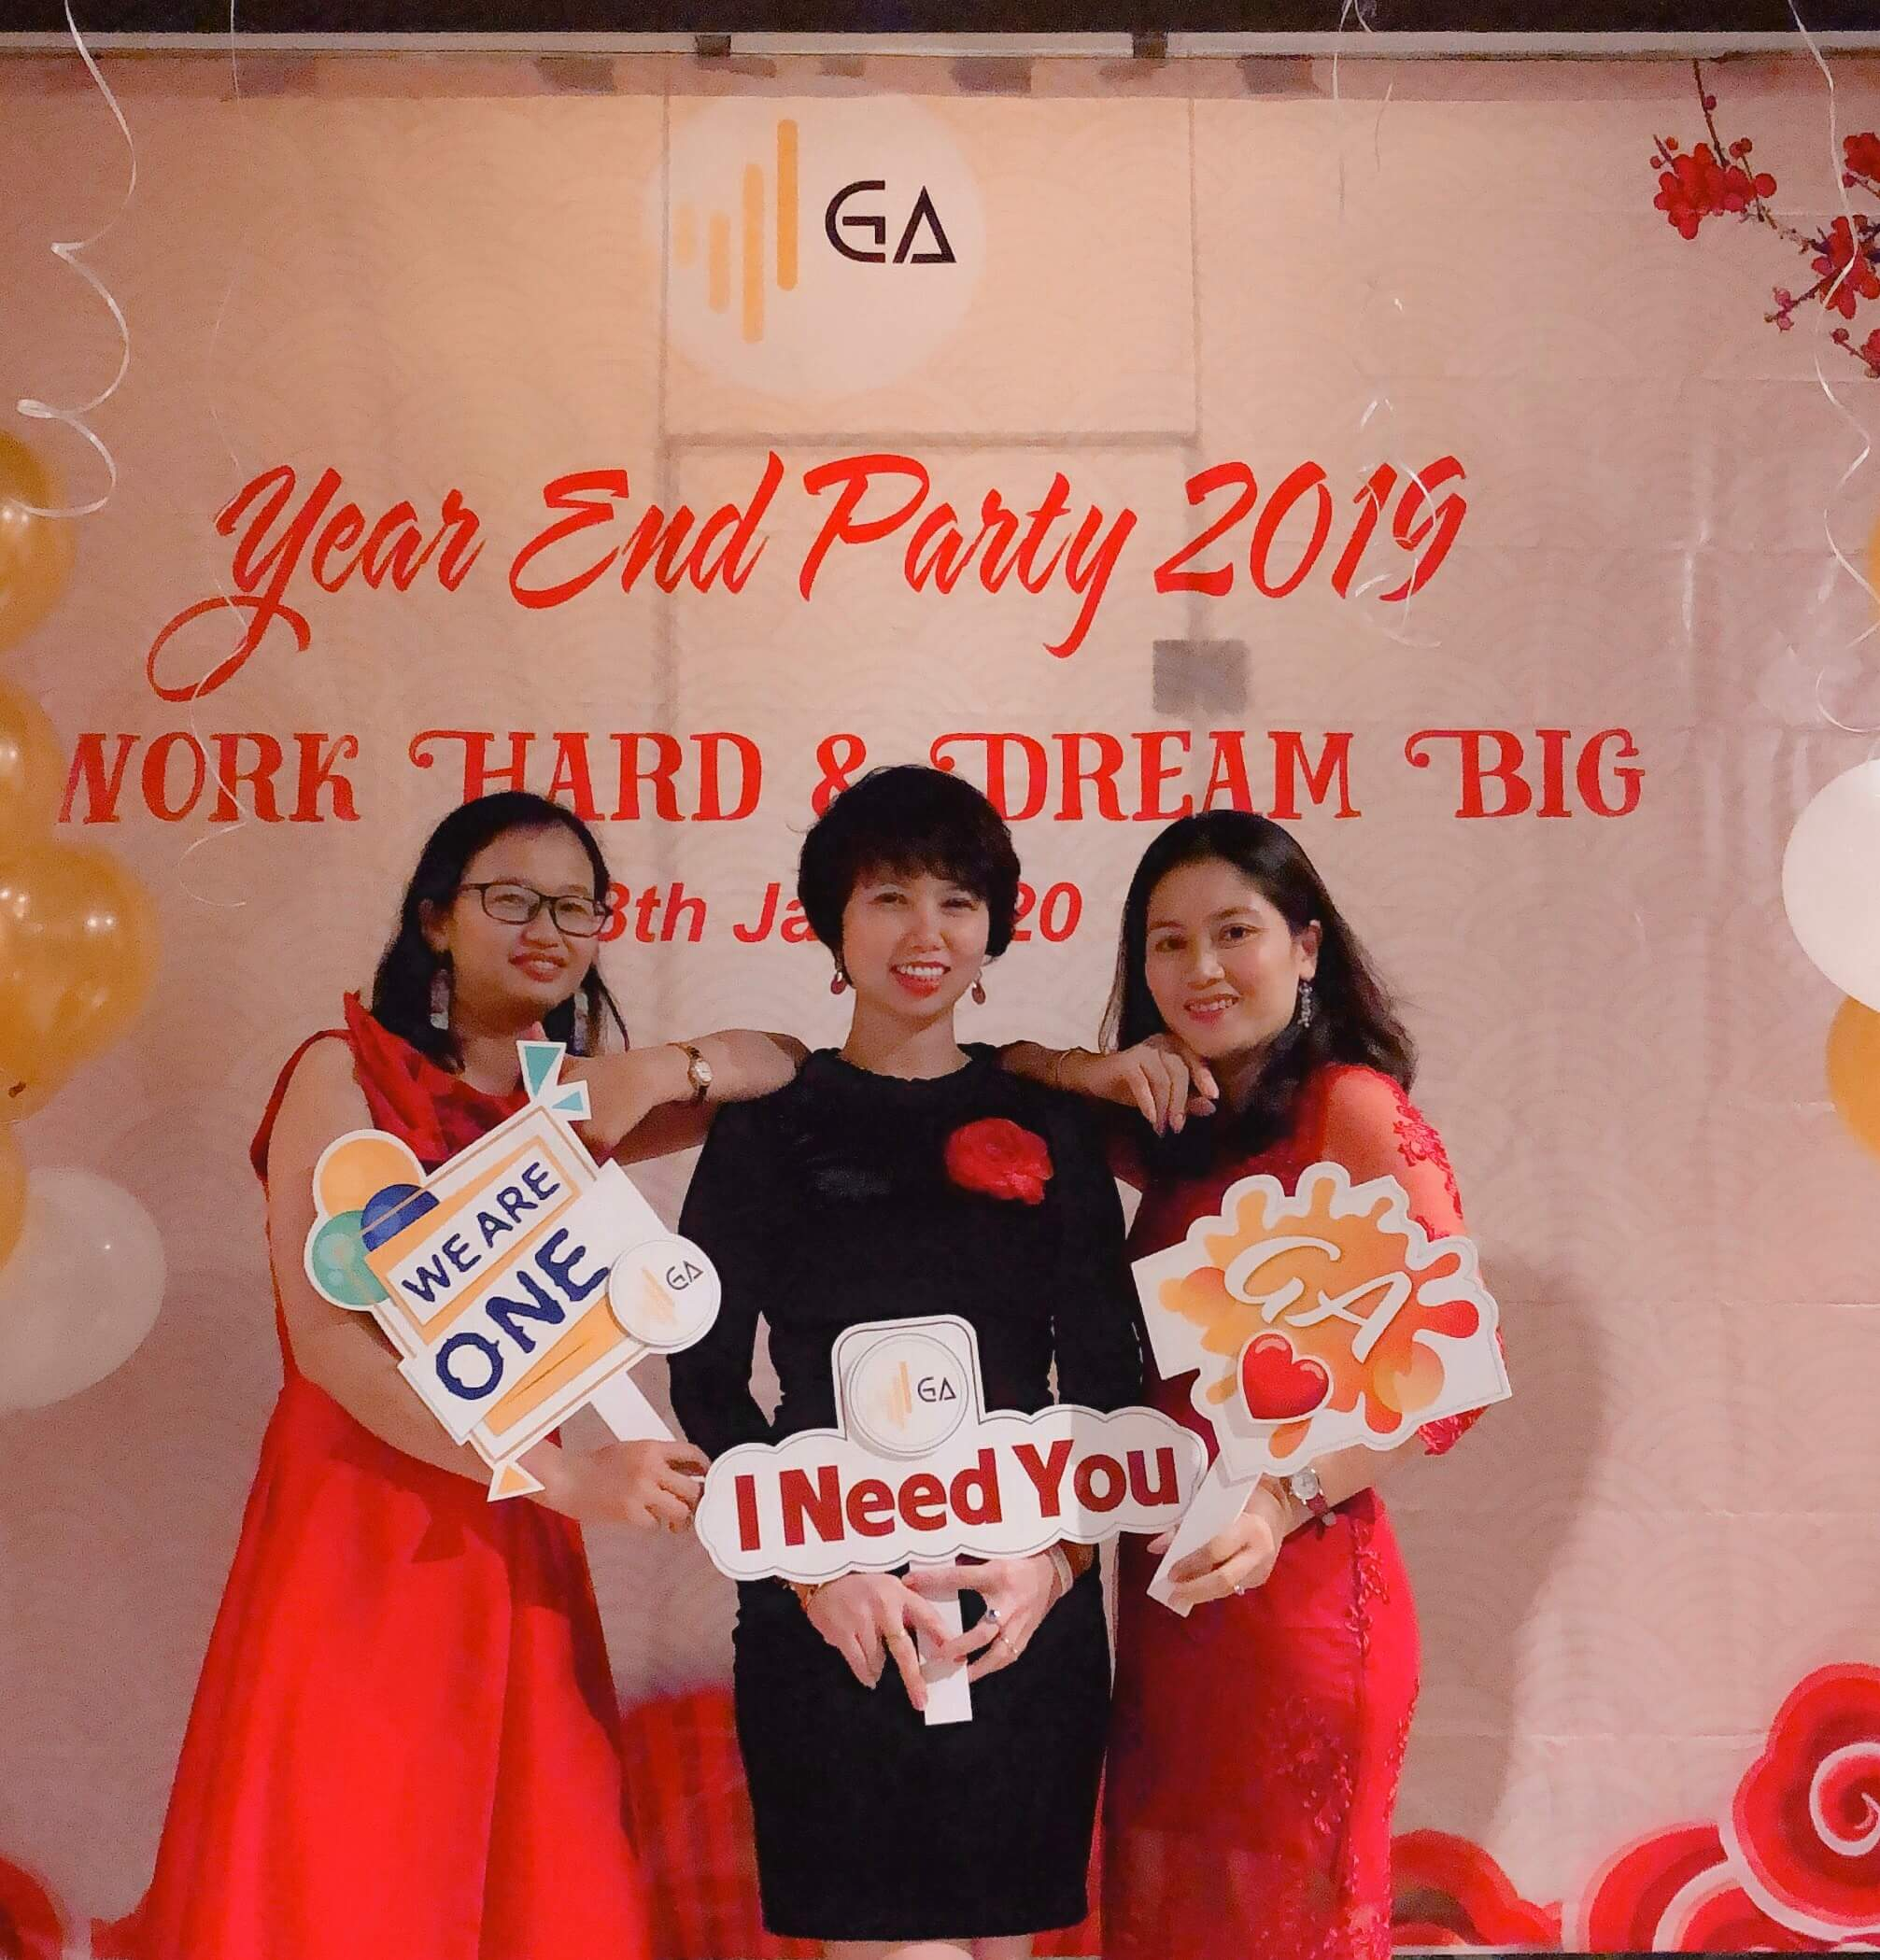 Year End Party 2019 check in